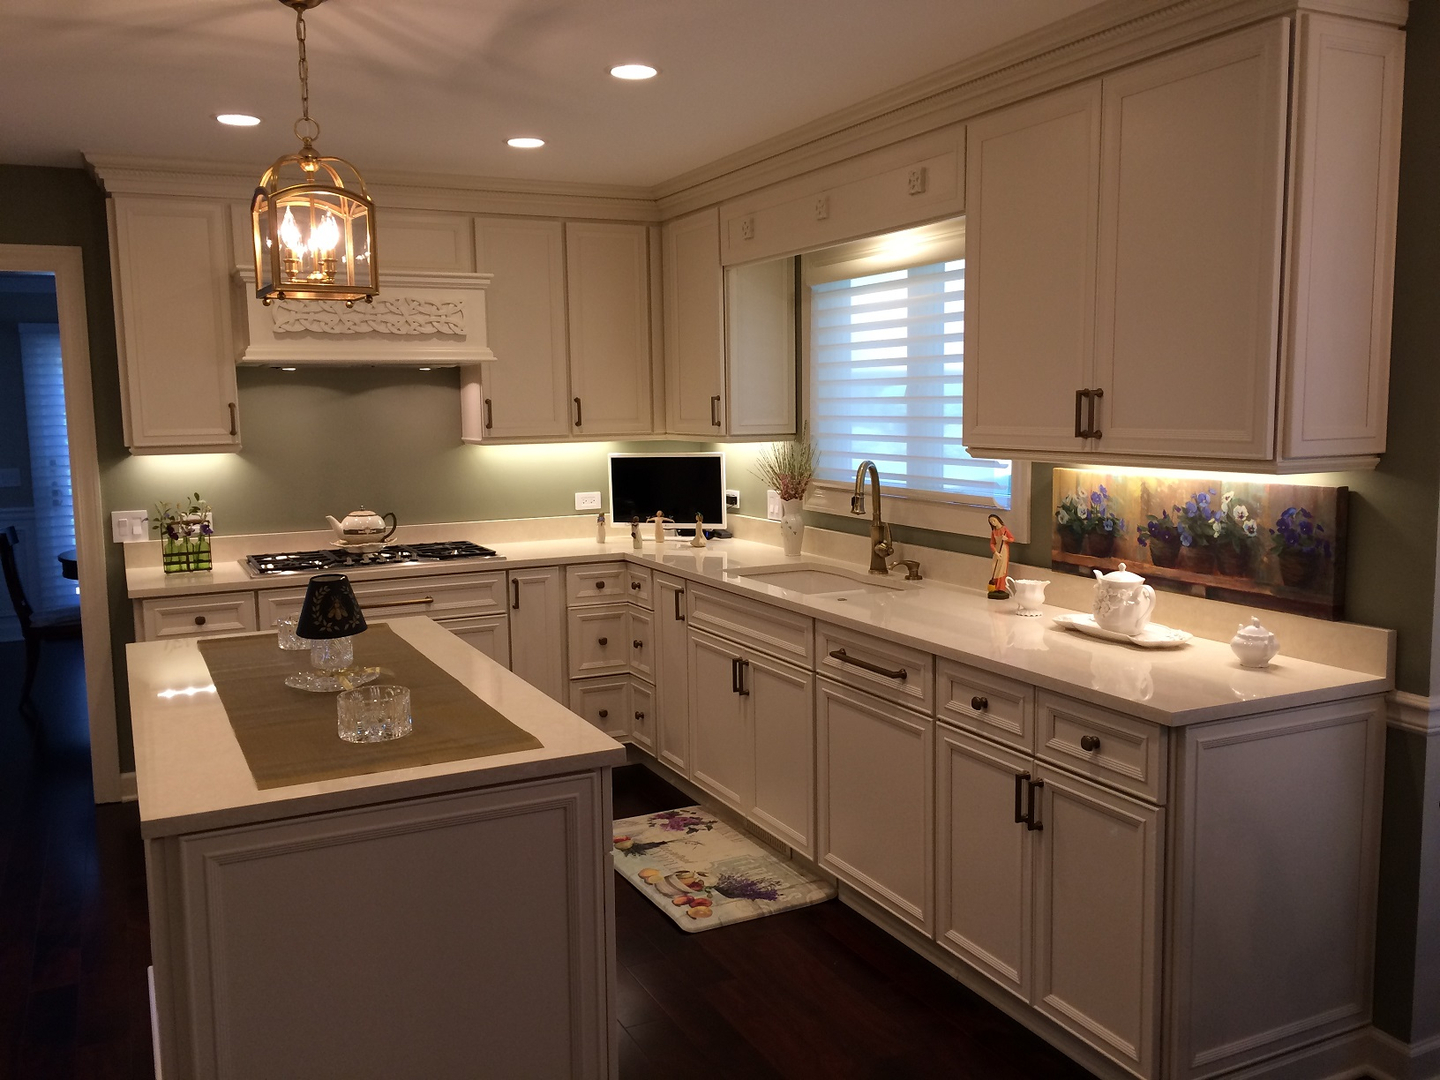 Schaumburg Remodeling Kitchen Bathroom Renovation Design & Construction